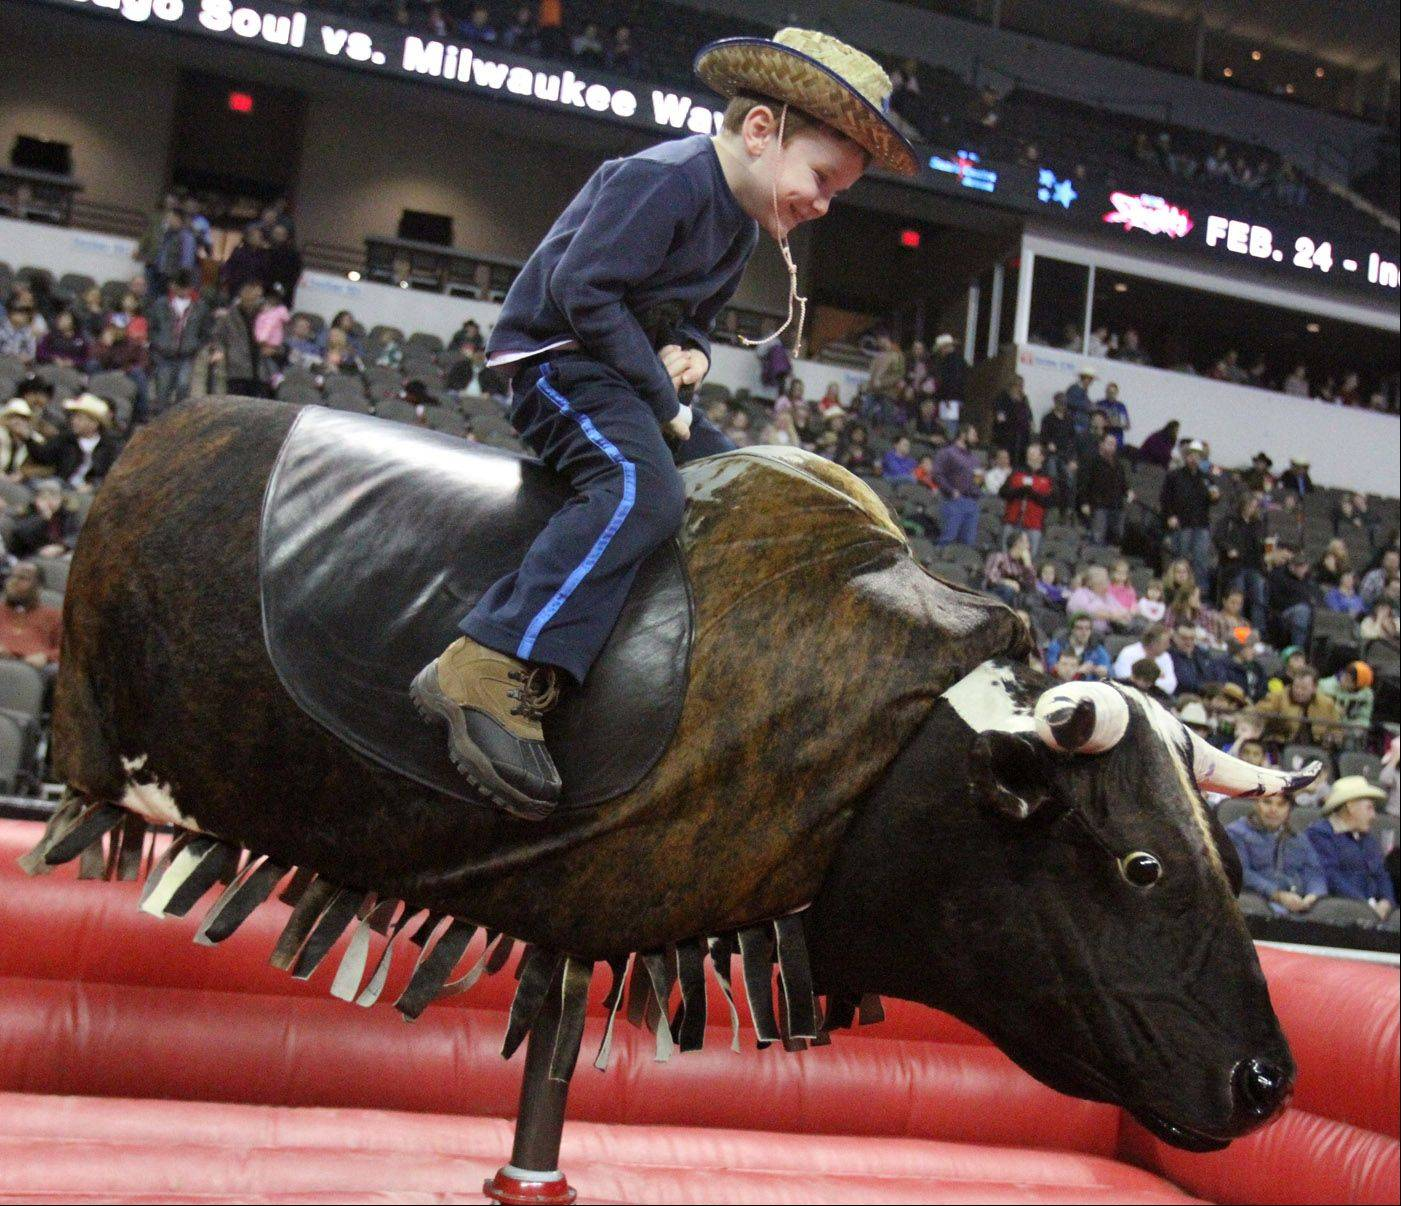 Ryan Giczkowski, 6, of Streamwood, rides the mechanical bull before the Professional Championship Bullrider's World Tour Finale V at the Sears Centre in Hoffman Estates on Saturday, February 2, 2013.